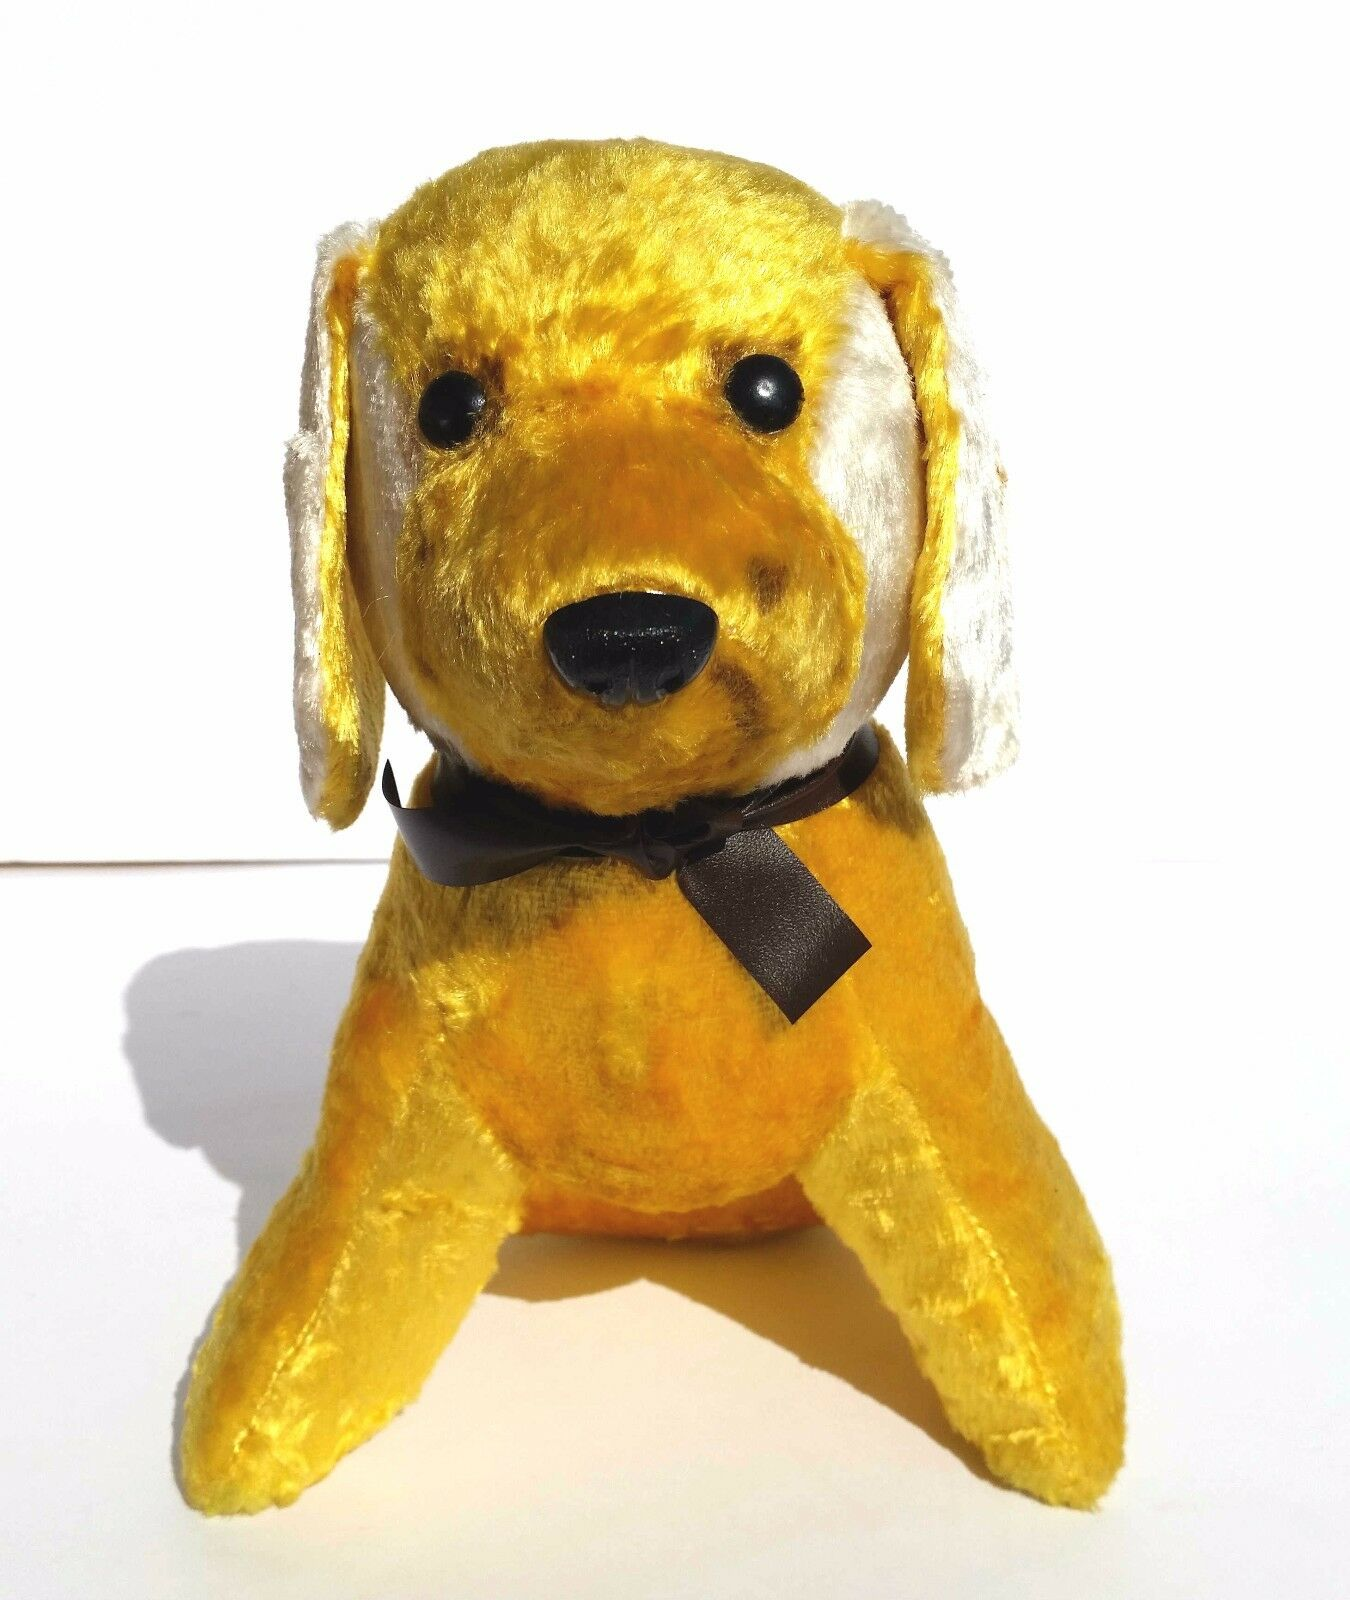 1970s USSR Russia Soviet Plush Toy Doll Yellow PUPPY